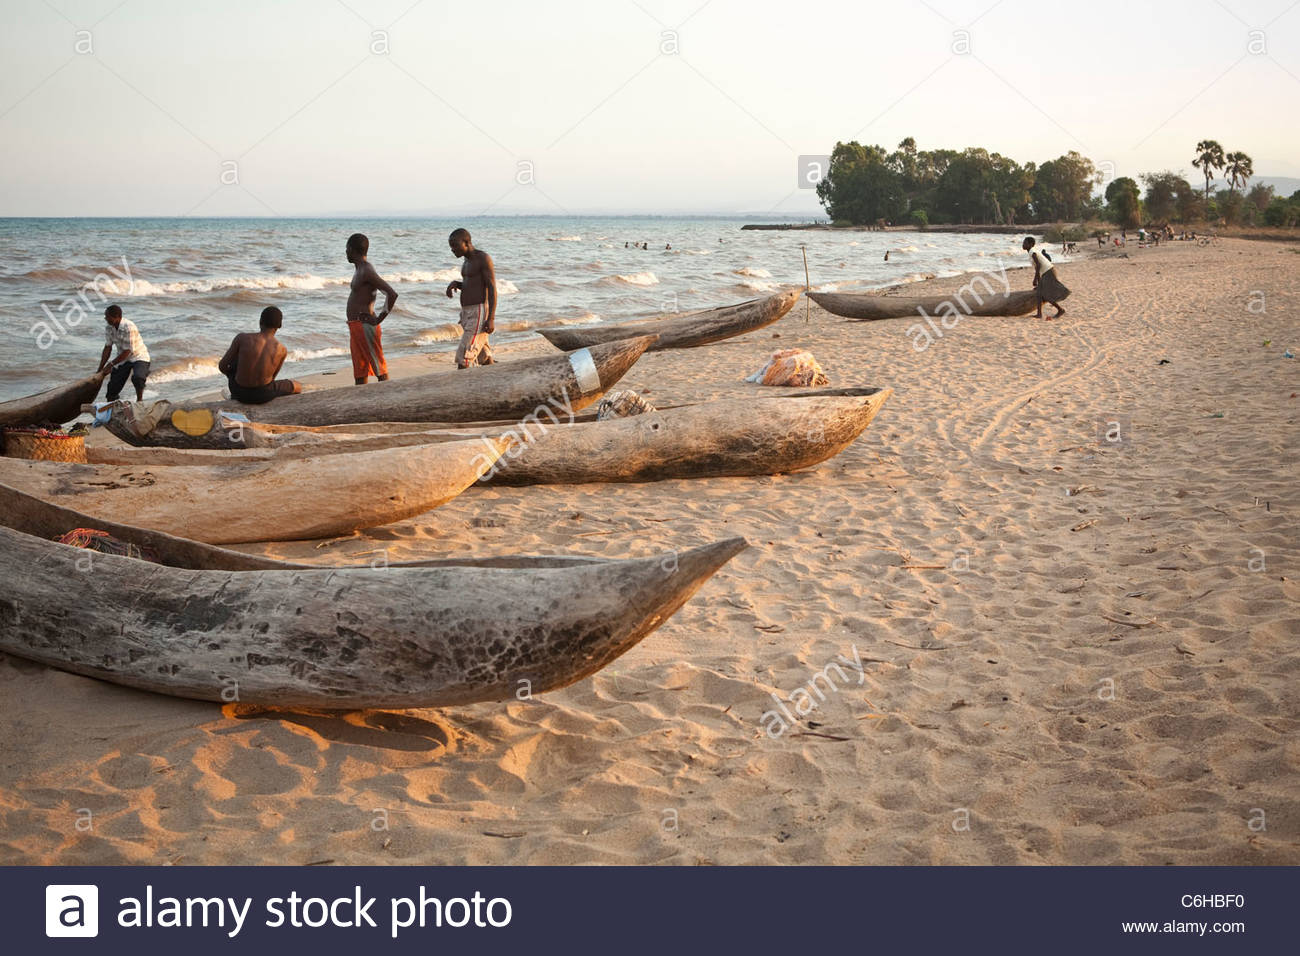 Traditional dugout canoes on the shore of Lake Malawi - Stock Image